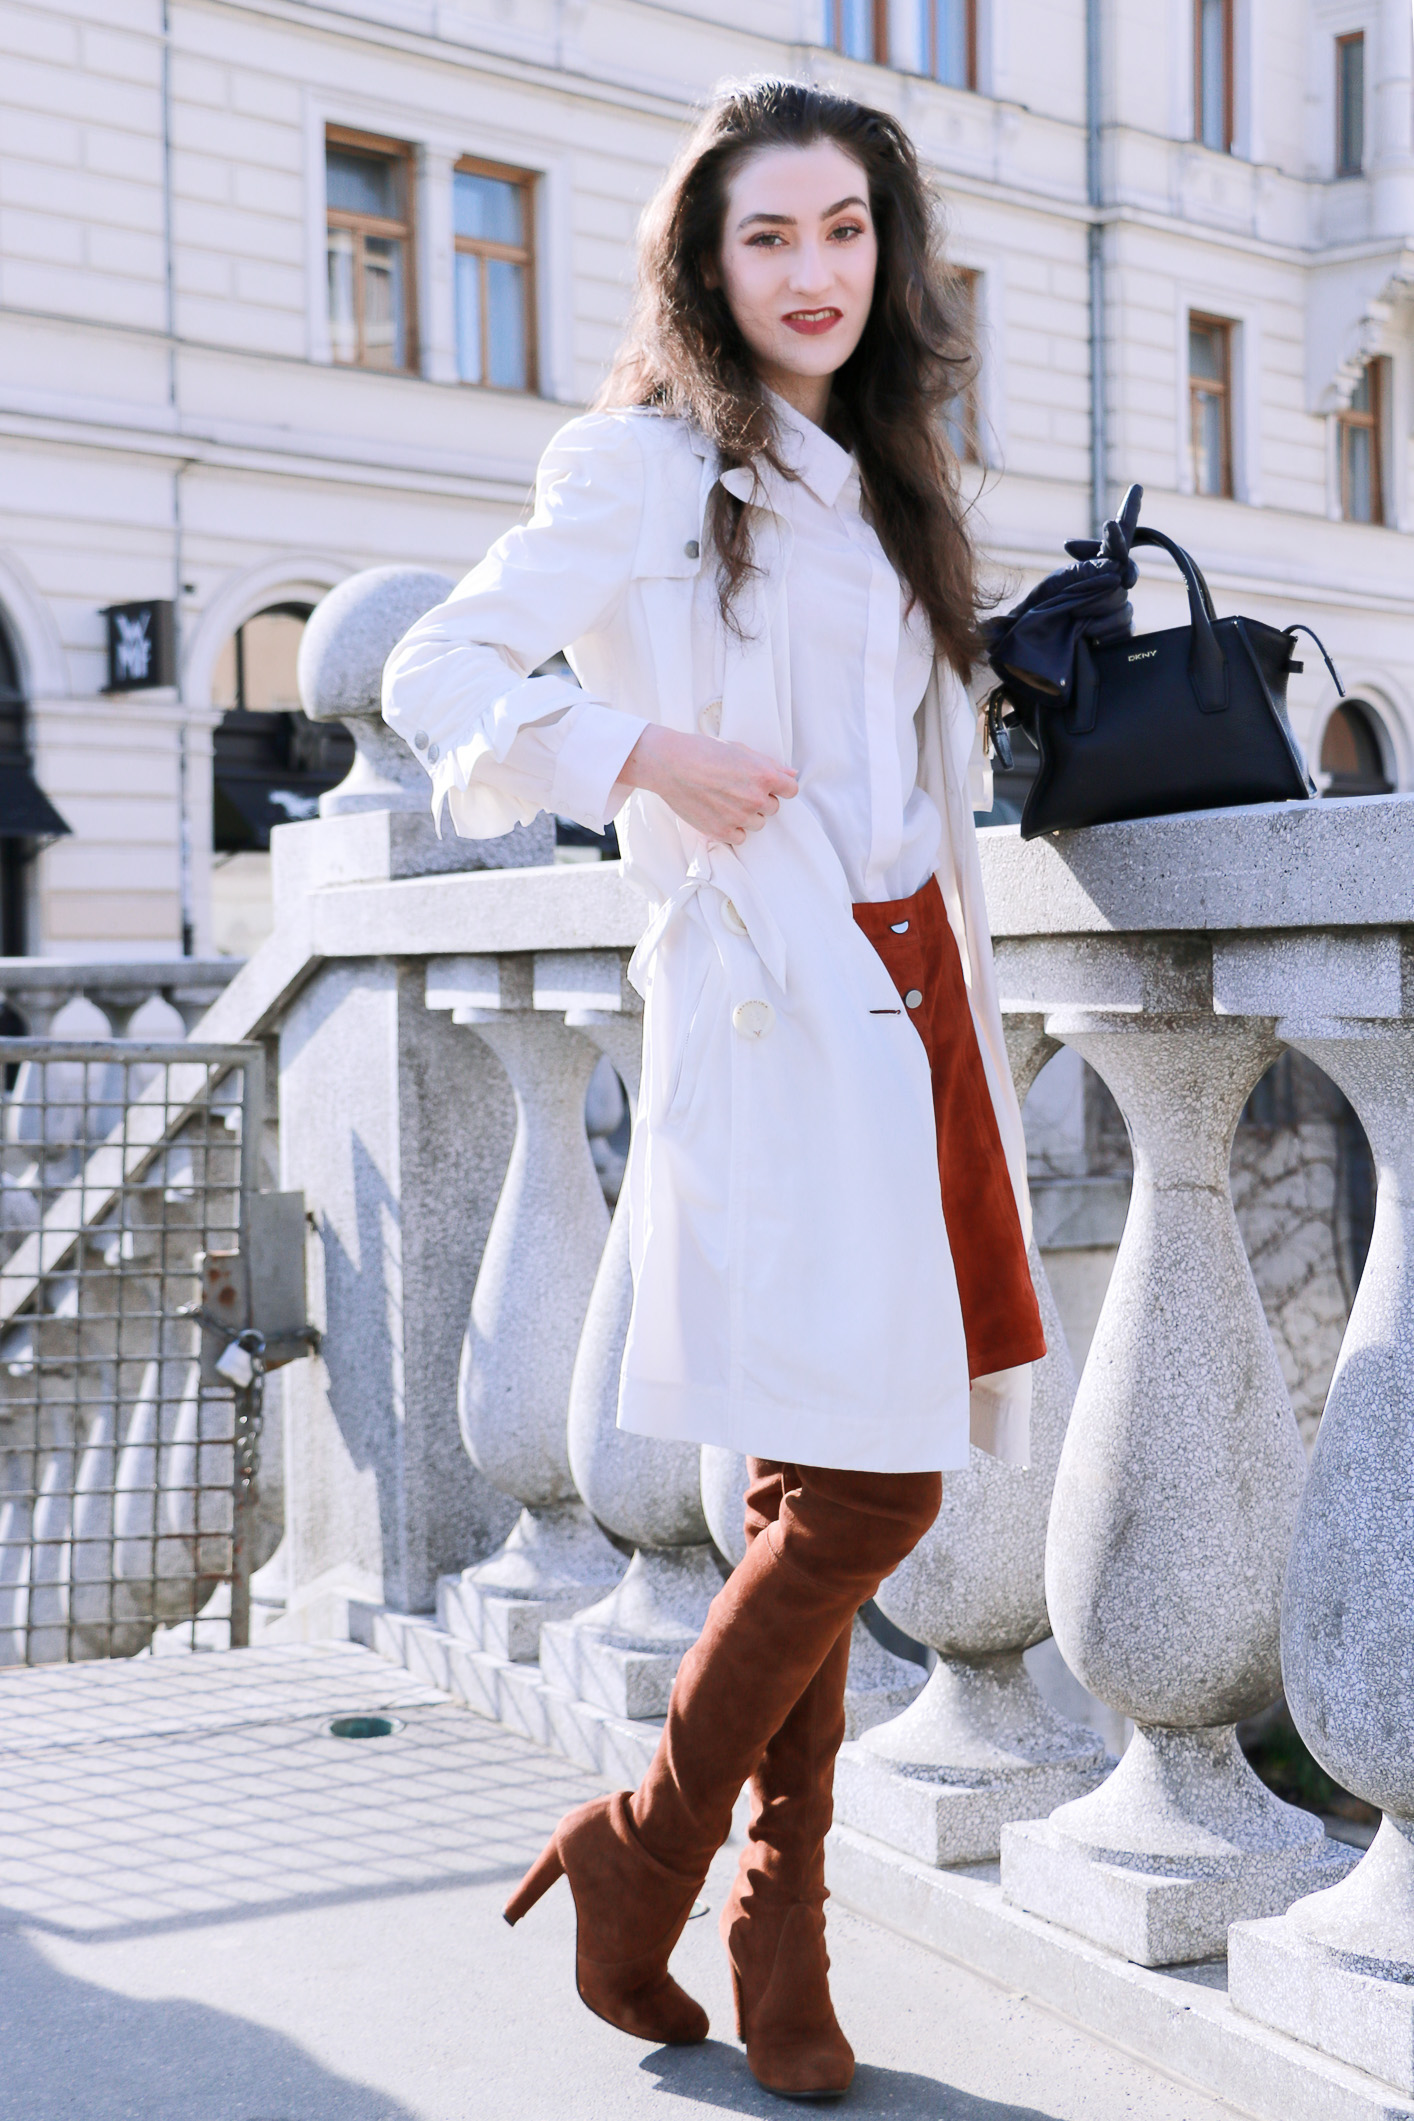 Fashion blogger Veronika Lipar of Brunette From Wall Street sharing how to style a long thin trench robe this spring